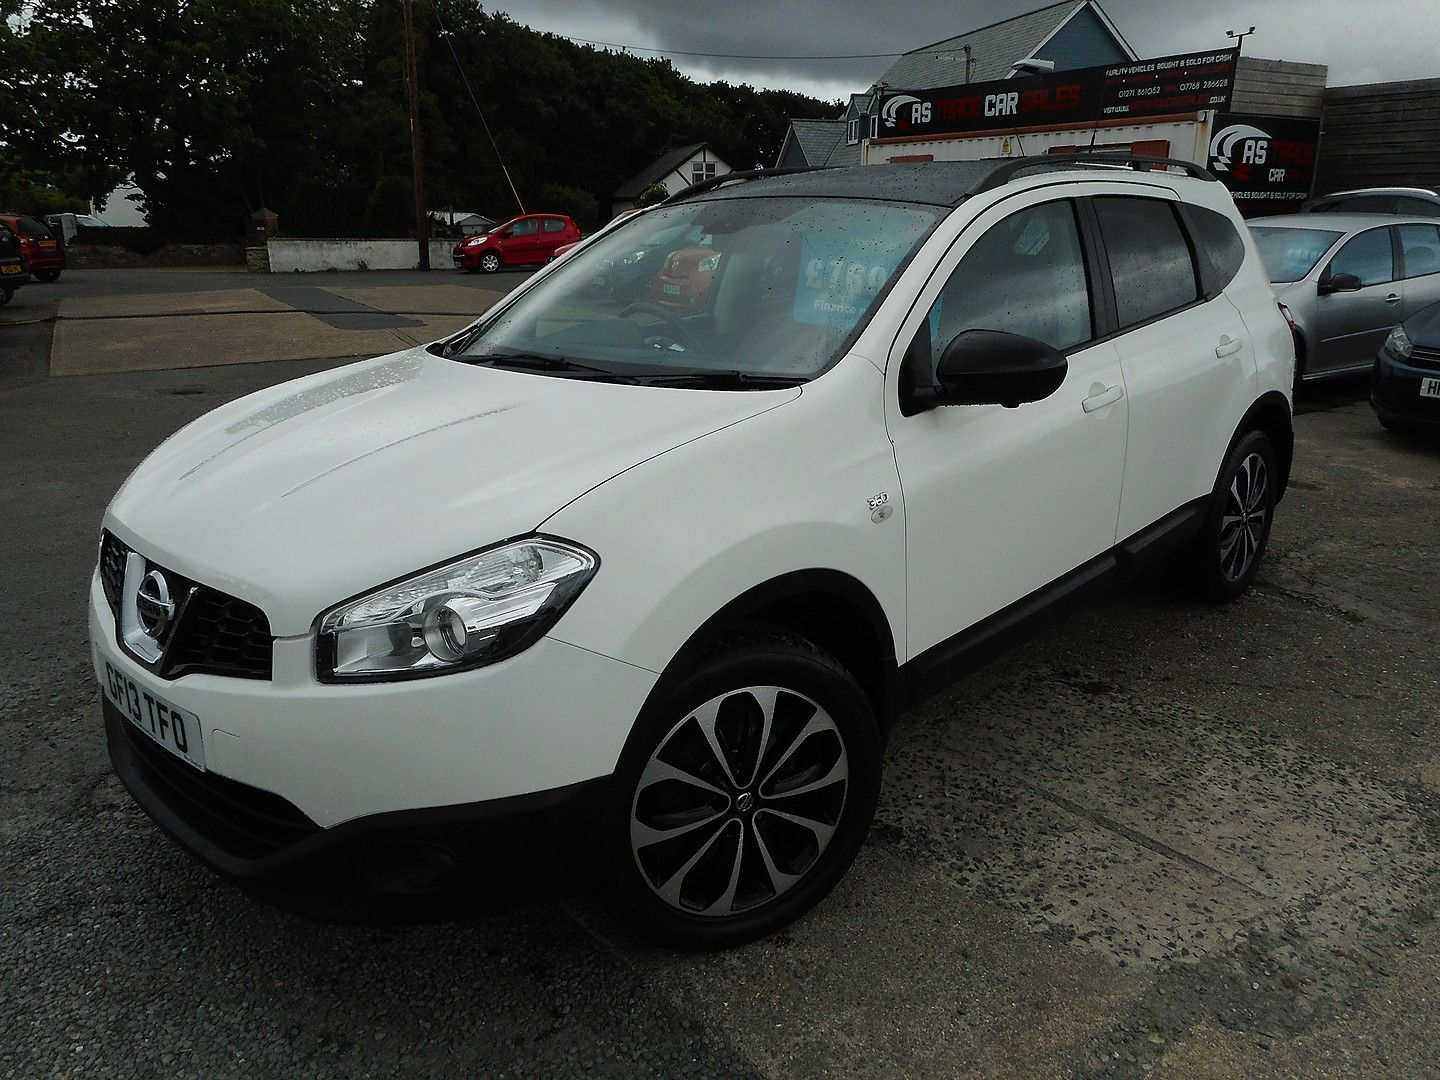 NISSAN QASHQAI 360 1.5 dCi 7 SEATER (2013) - Picture 5